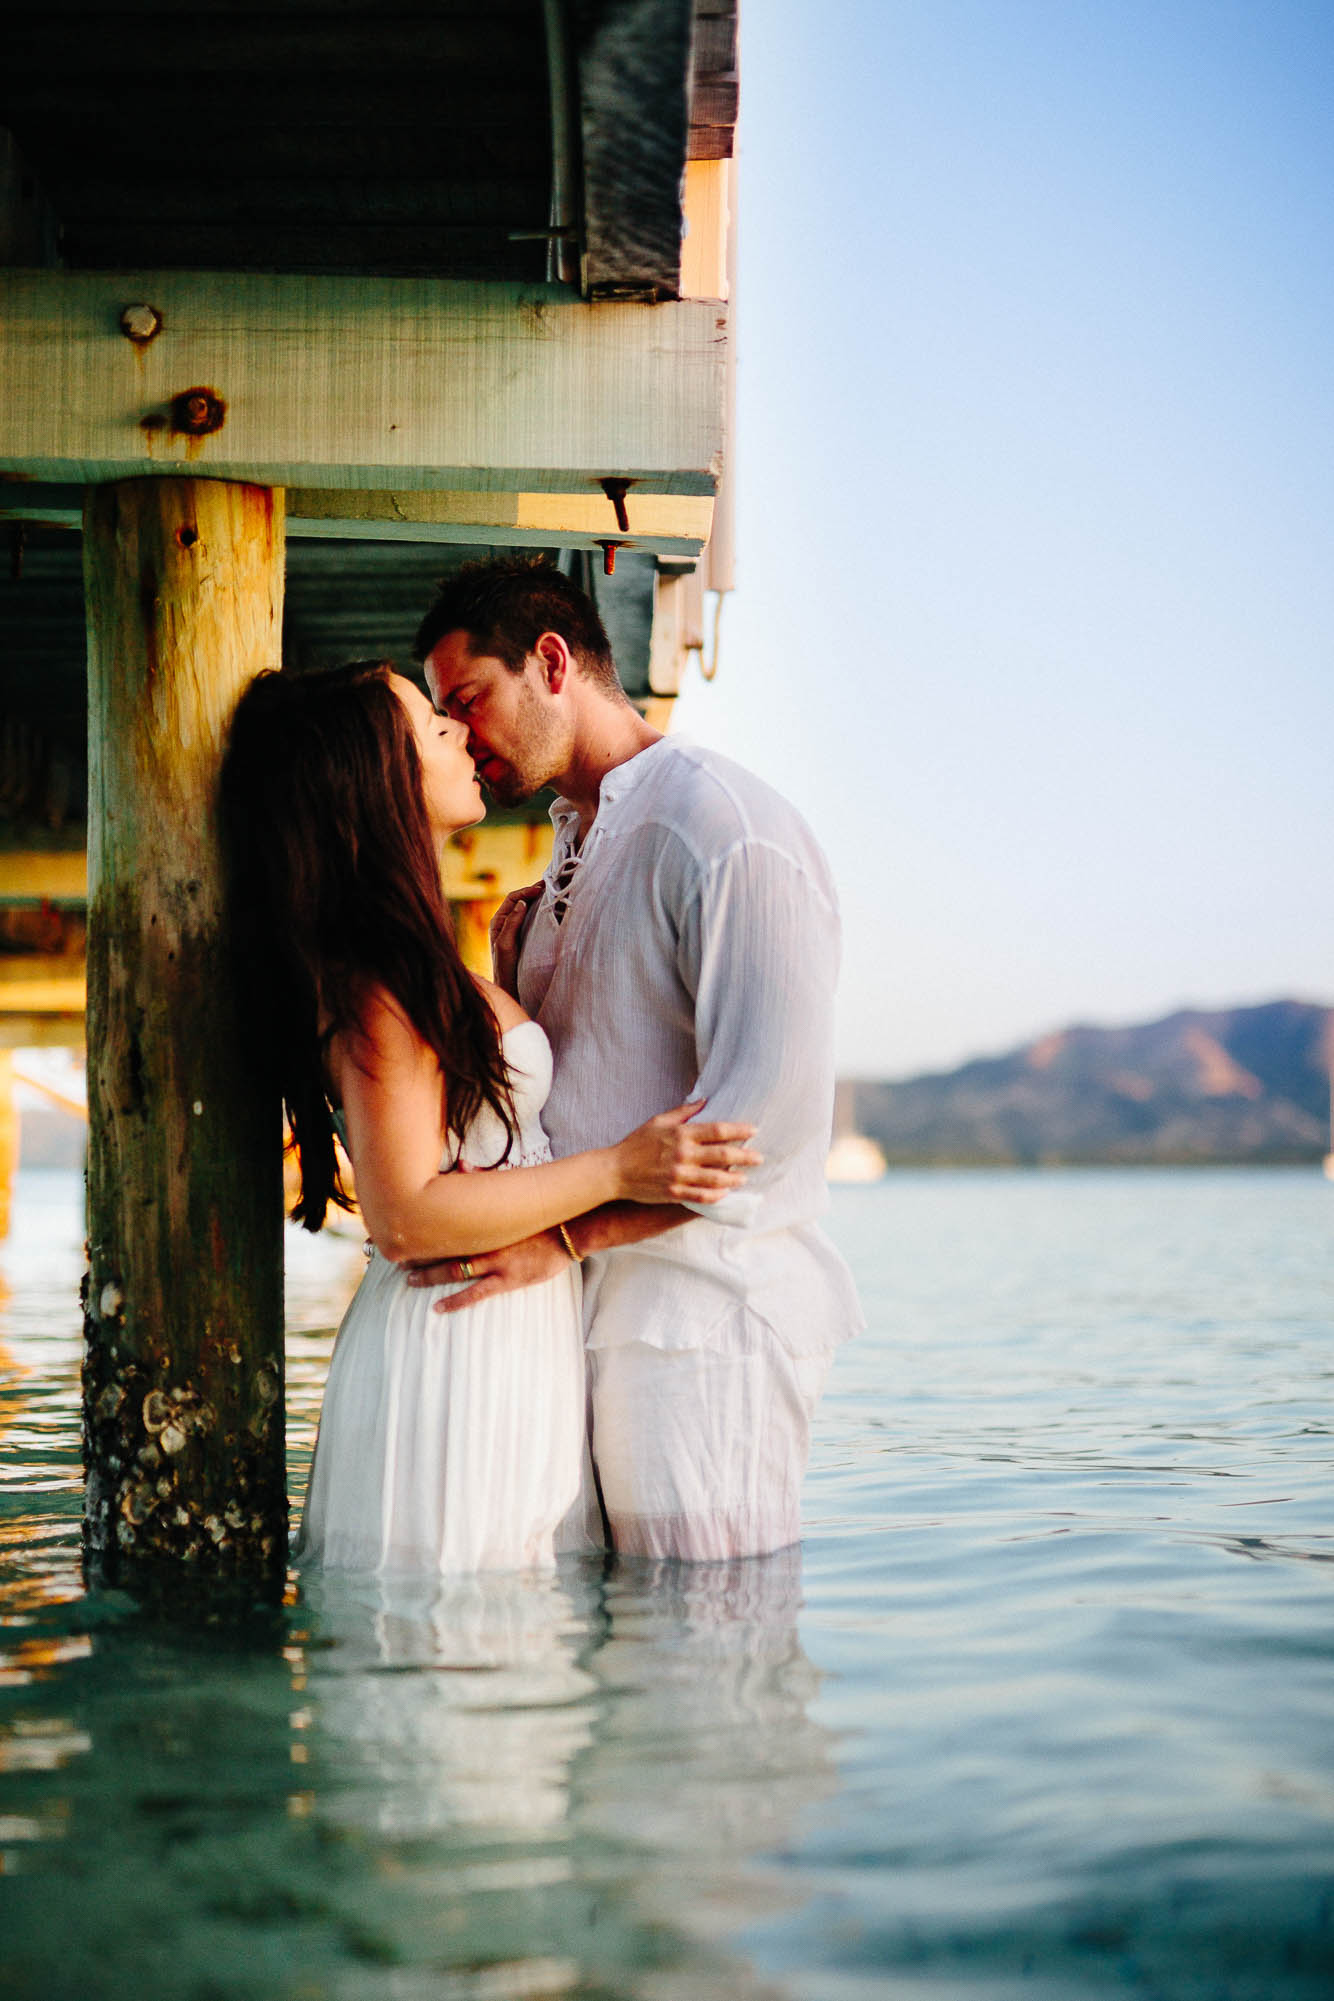 Couple kissing under the pier